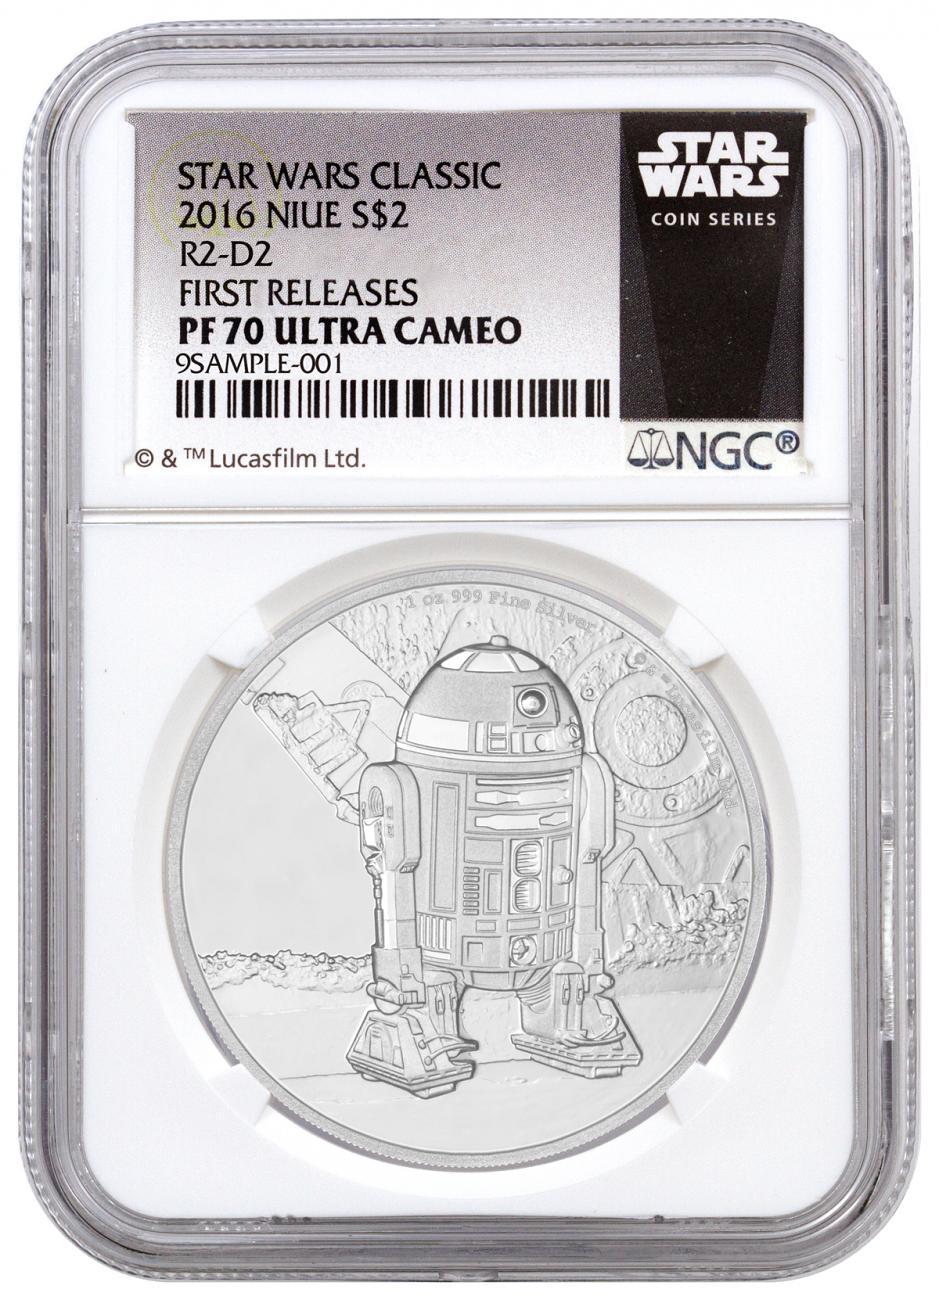 2016 Niue $2 1 oz. Proof Silver Star Wars Classics Series - R2-D2 - NGC PF70 UC First Releases (Exclusive Star Wars Label)